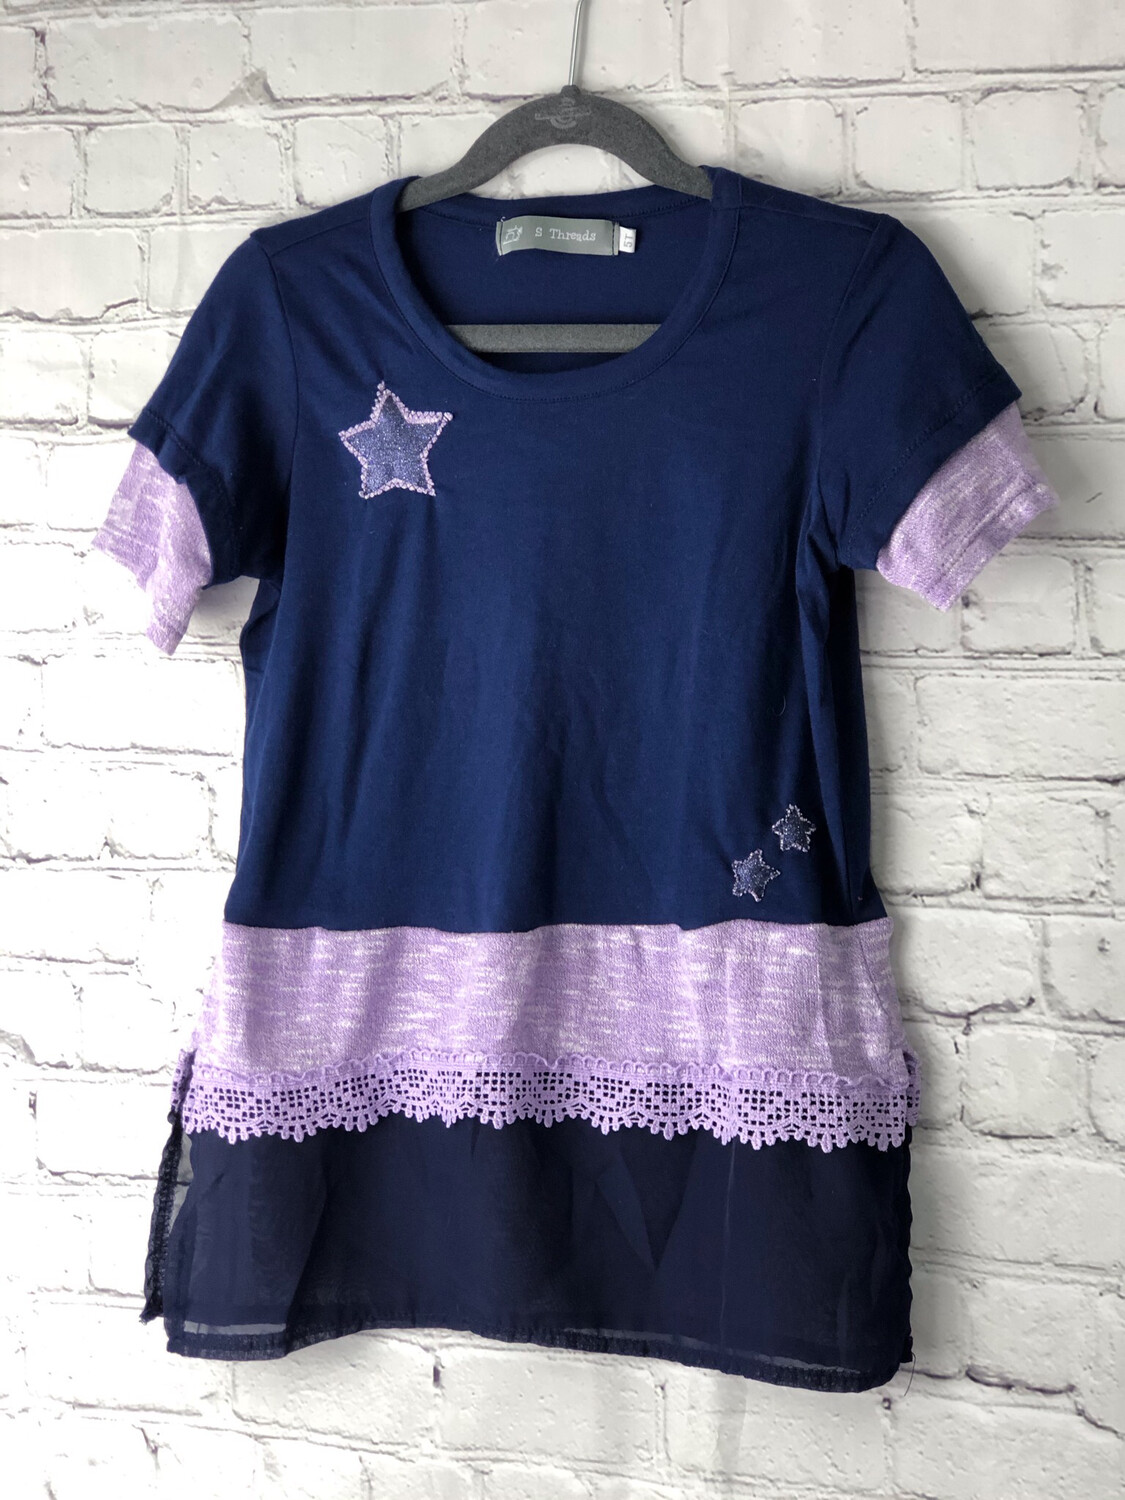 S Threads Kids Upcycled Short Sleeve Navy and Purple Lace Ruffle Shirt Size Child 5T